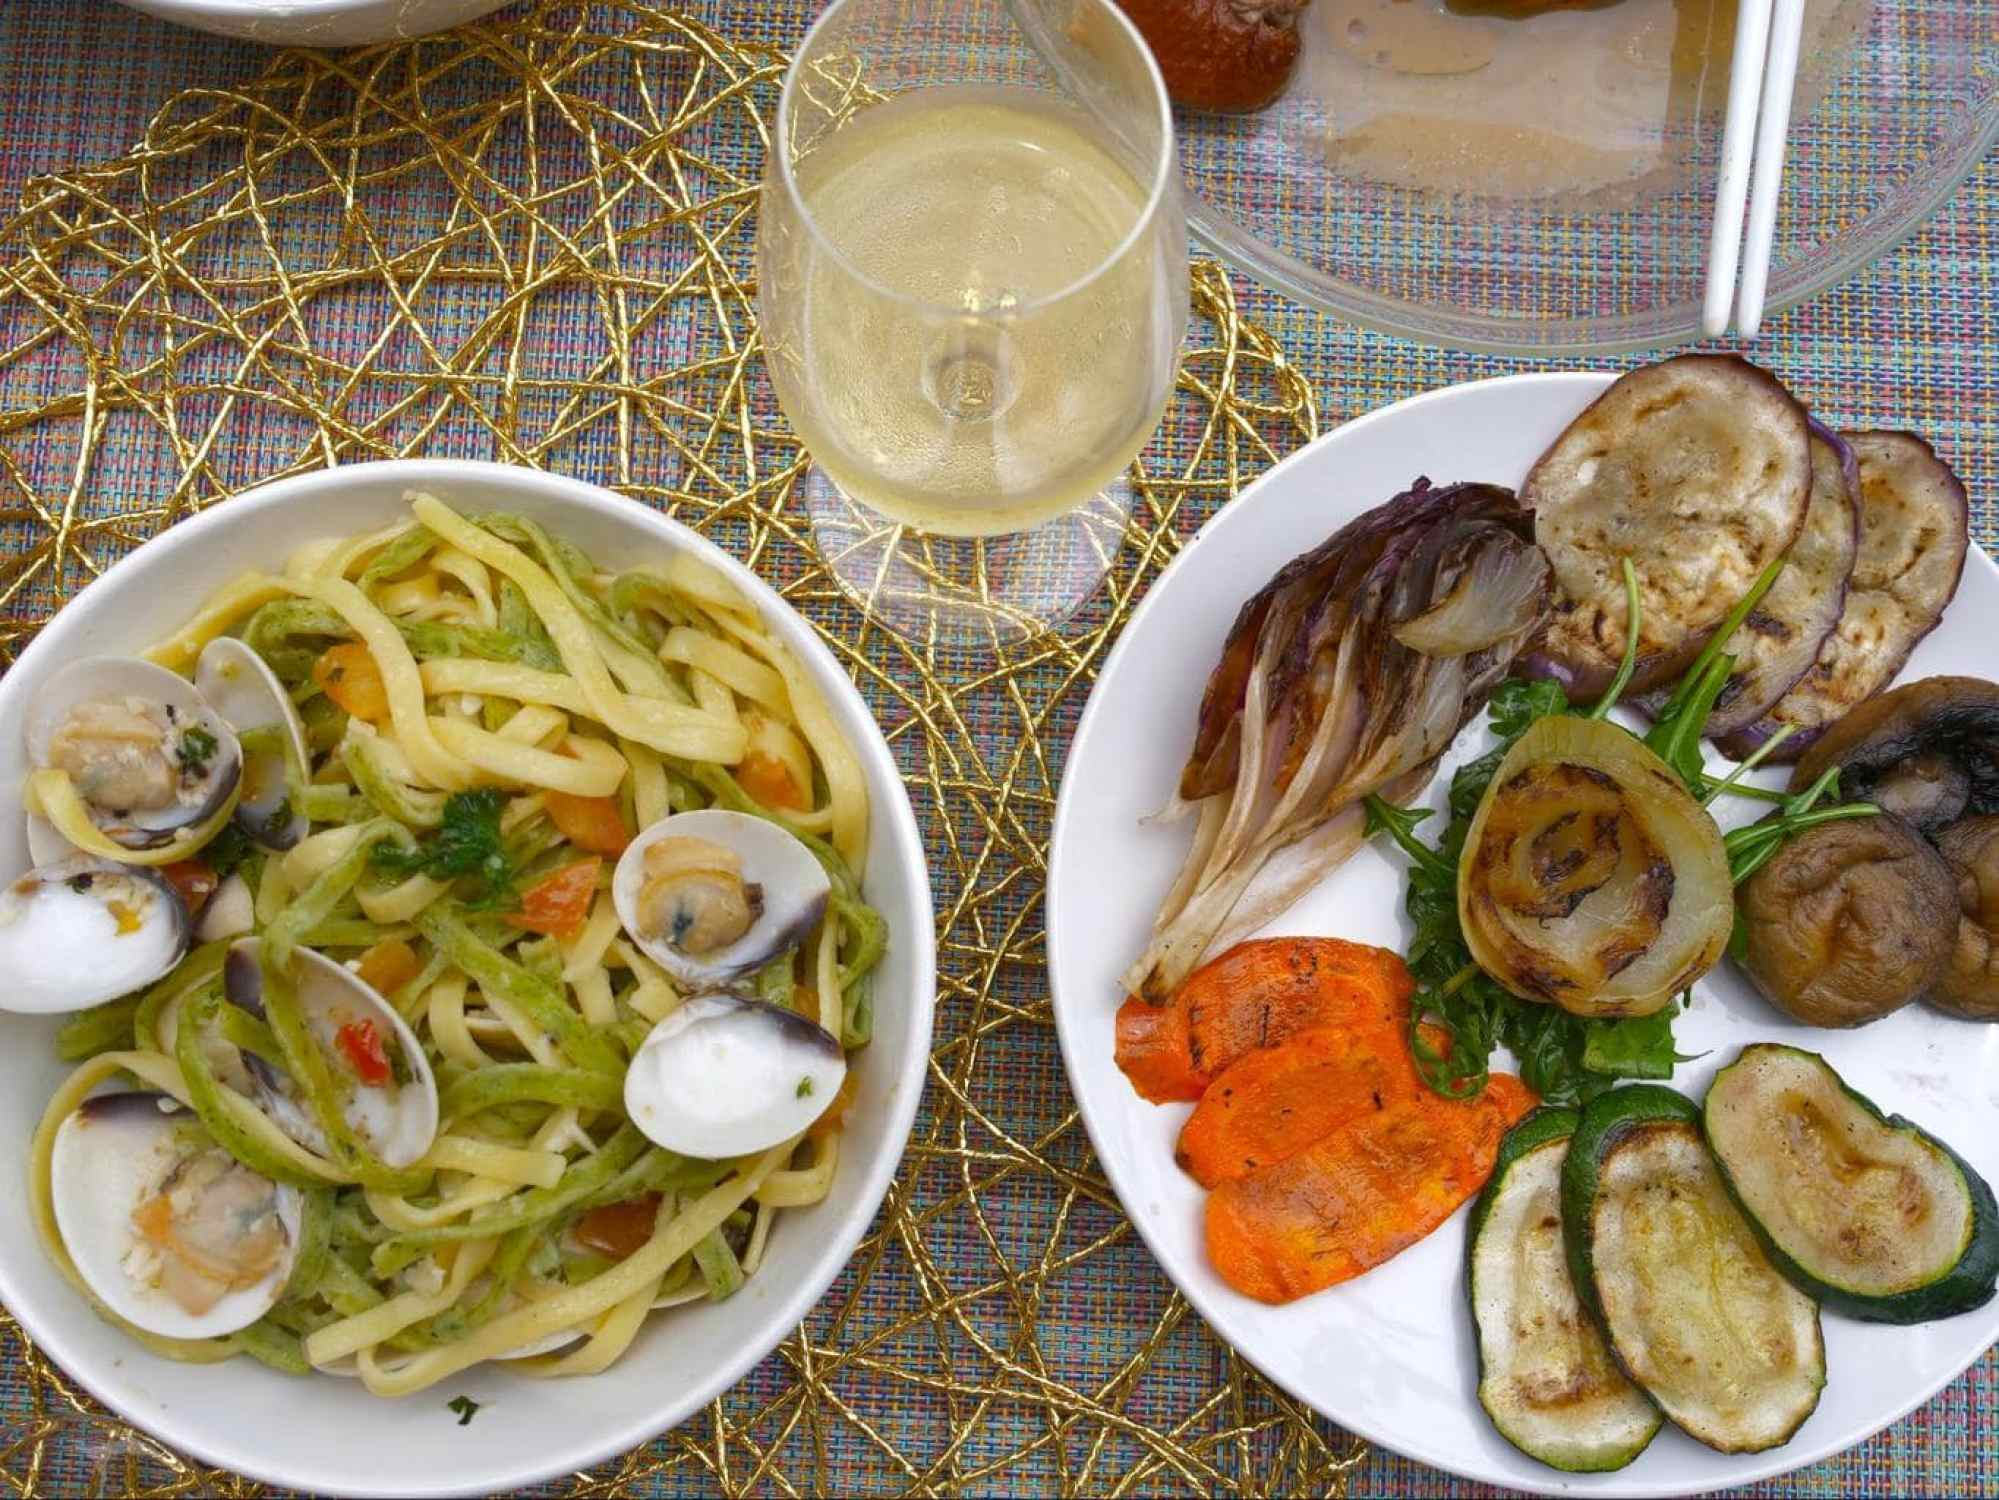 Pairing Muller Thurgau with grilled vegetables and shellfish pasta